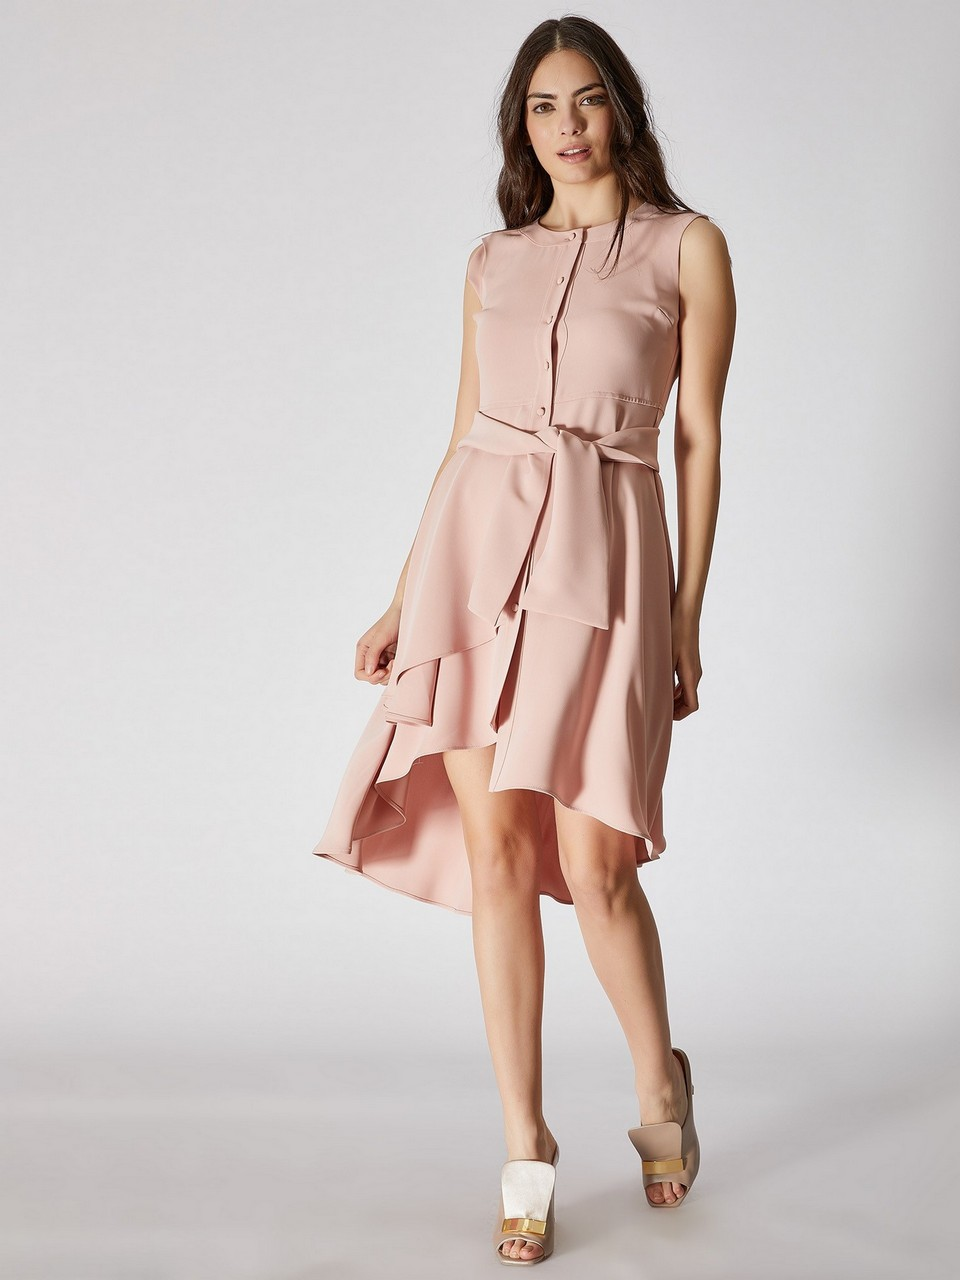 Sleeveless Asymmetric Cut Dress